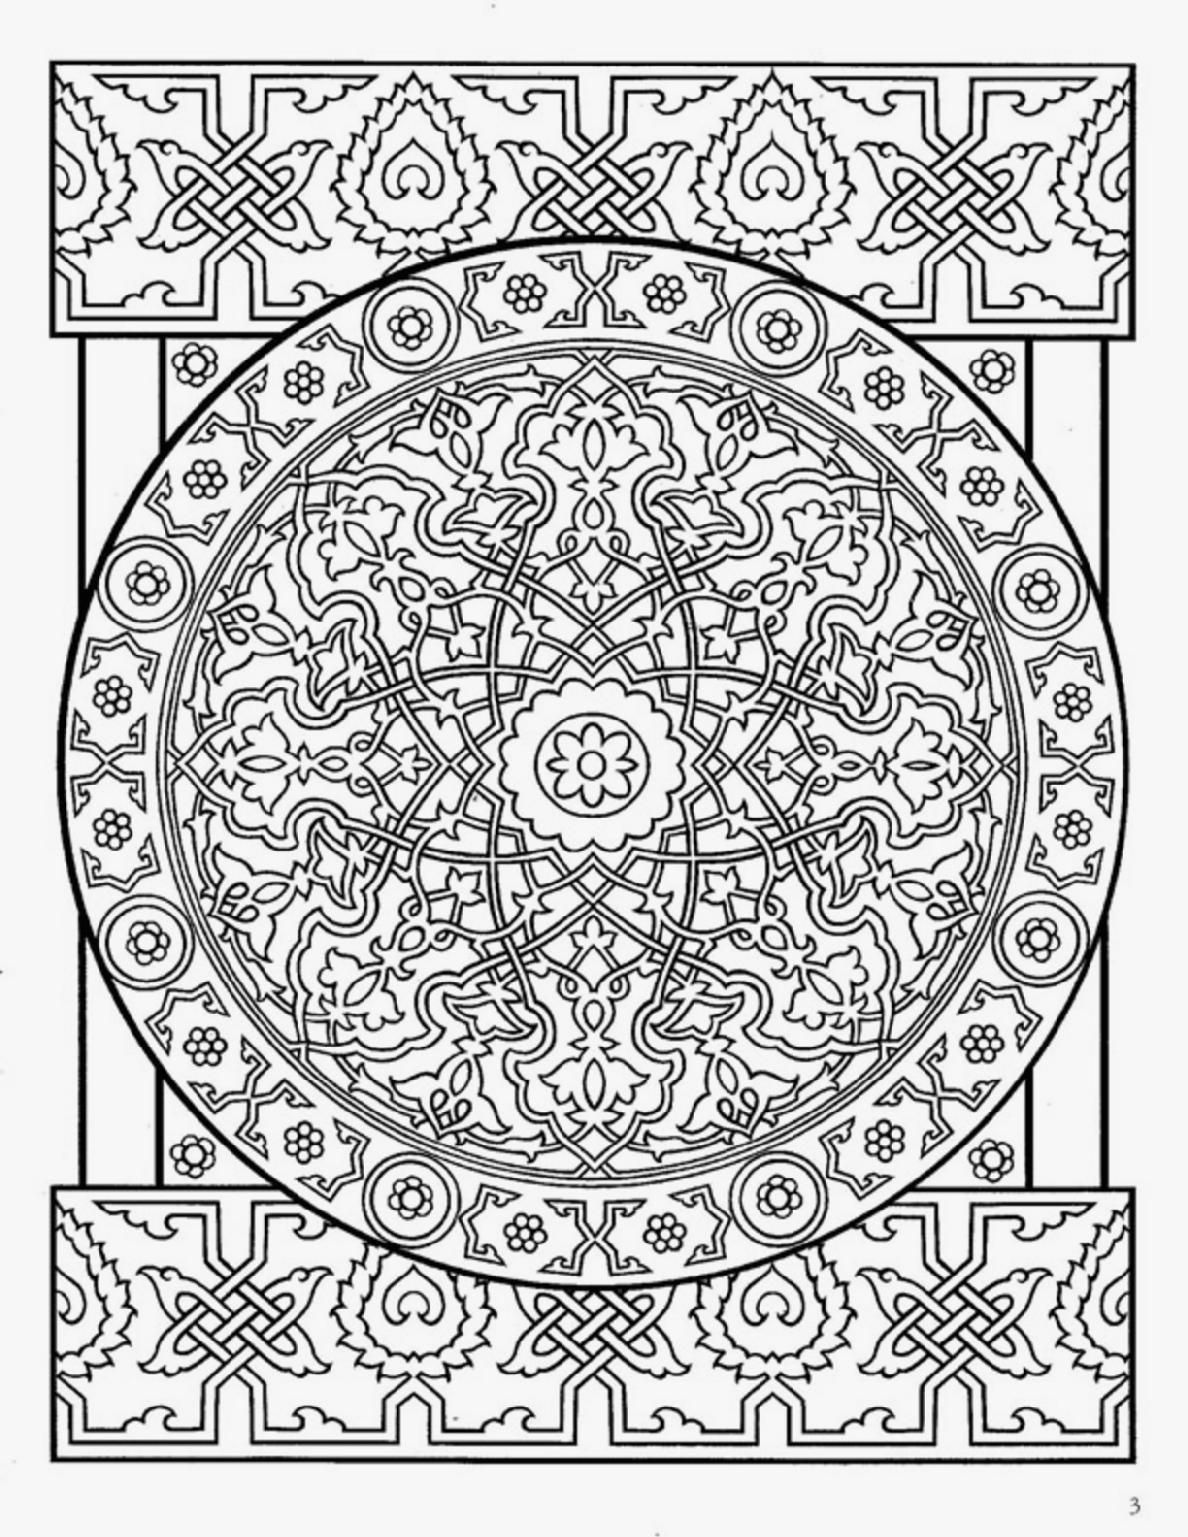 Coloring Pages. Free Dover Coloring Pages. Breadedcat Free ...